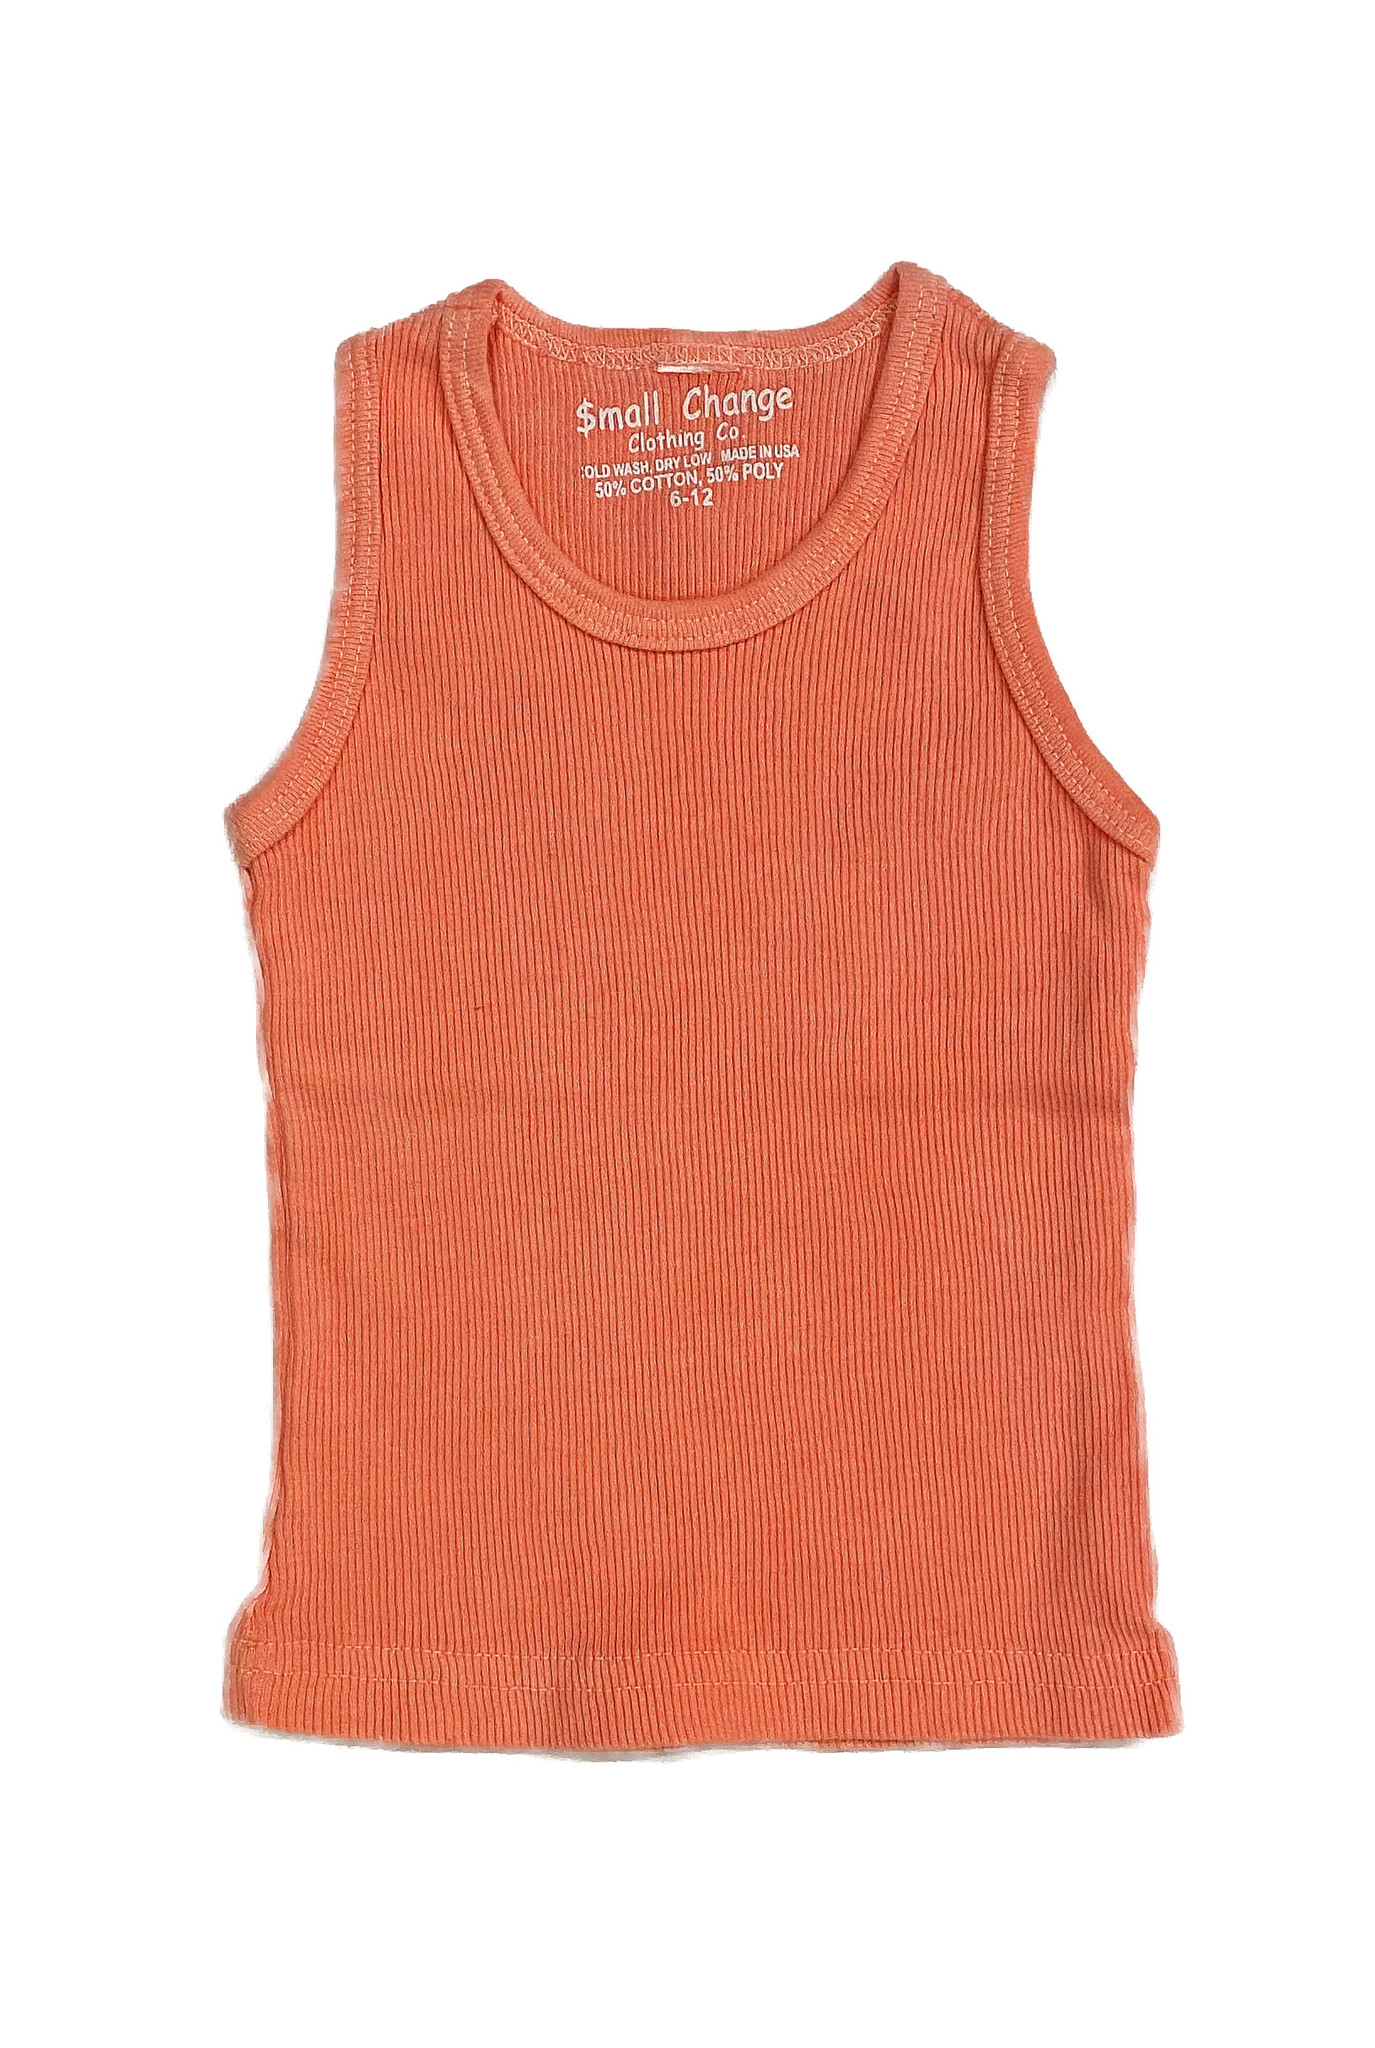 Small Change Neon Orange Ribbed Tank Top